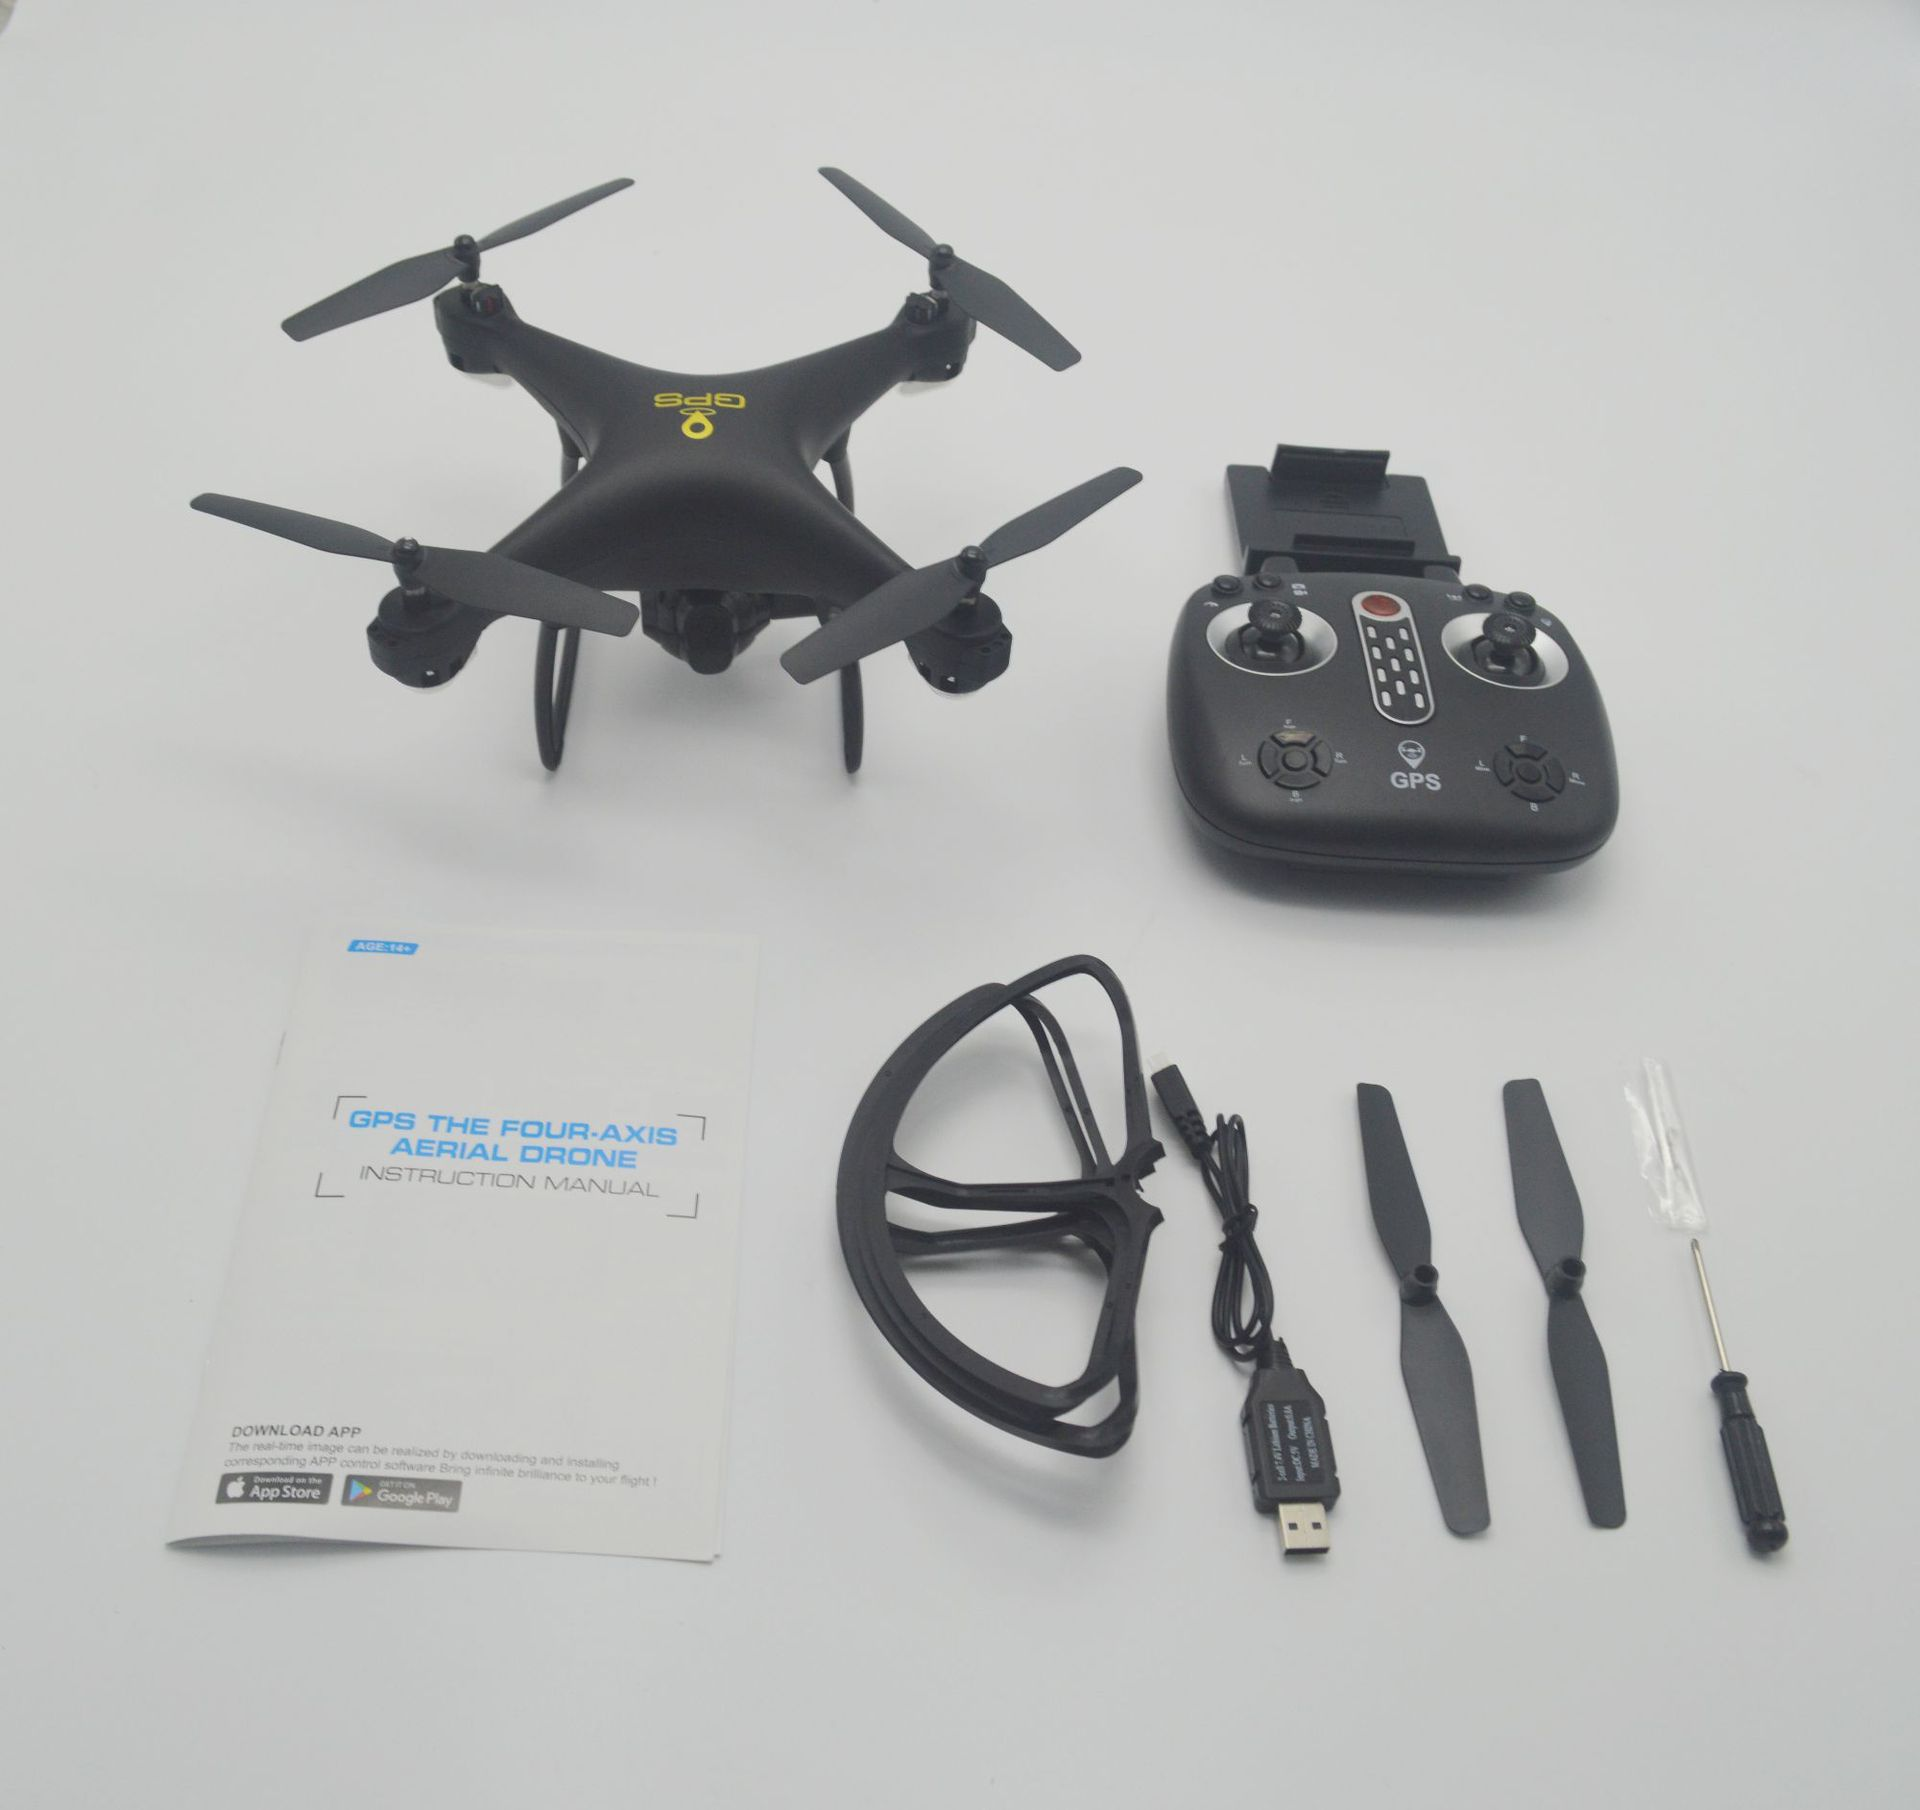 Lh-x25 Double GPS Positioning Return Unmanned Aerial Vehicle High-definition Aerial Remote-control Aircraft With Follow Quadcopt